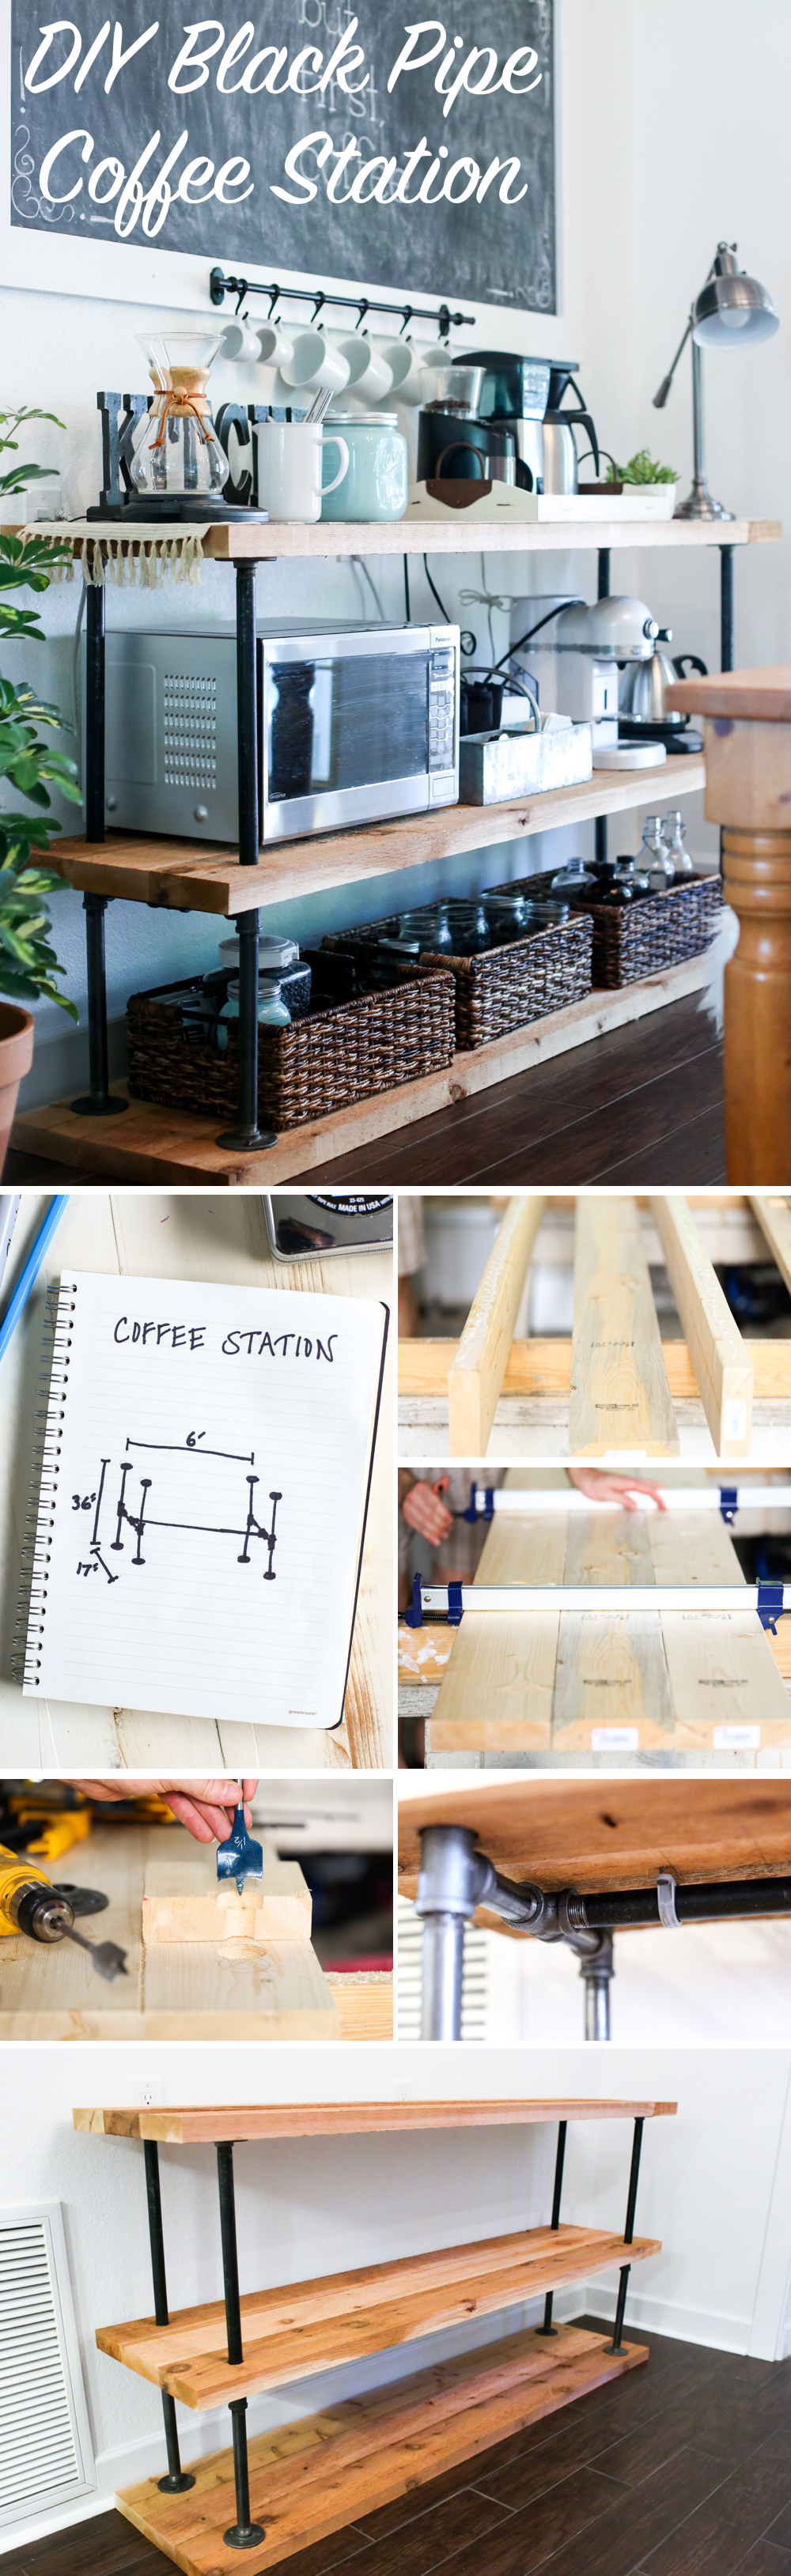 DIY Black Pipe Coffee Station